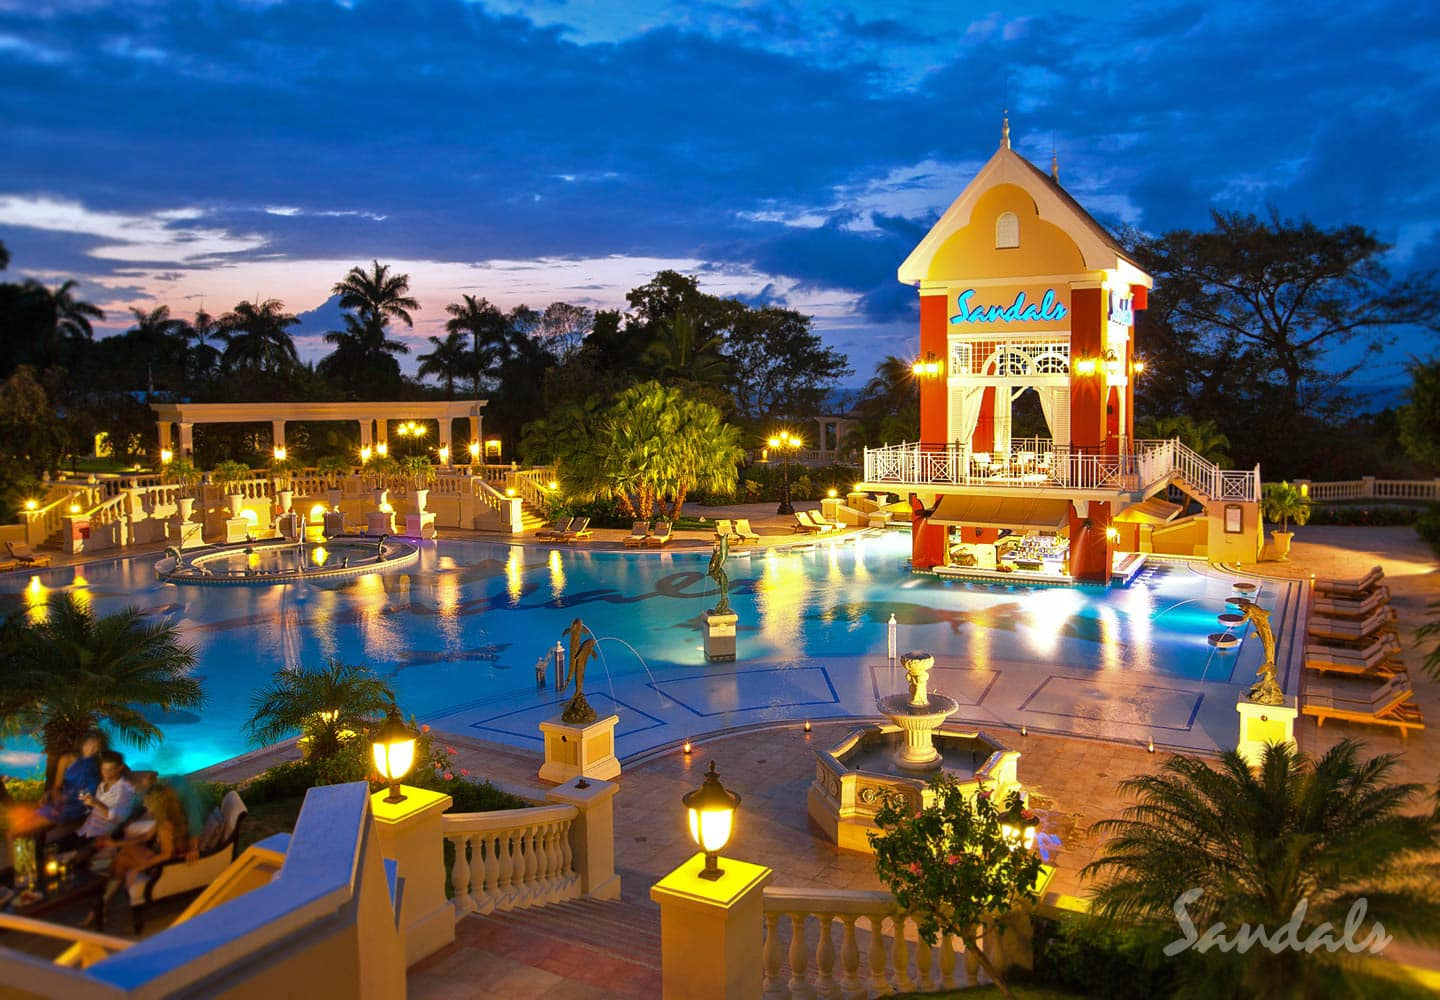 Sandals Ochi Rios resort, Jamaica, light up in the evening, outside swimming pool and dining, showing off the Sandals vacation deals